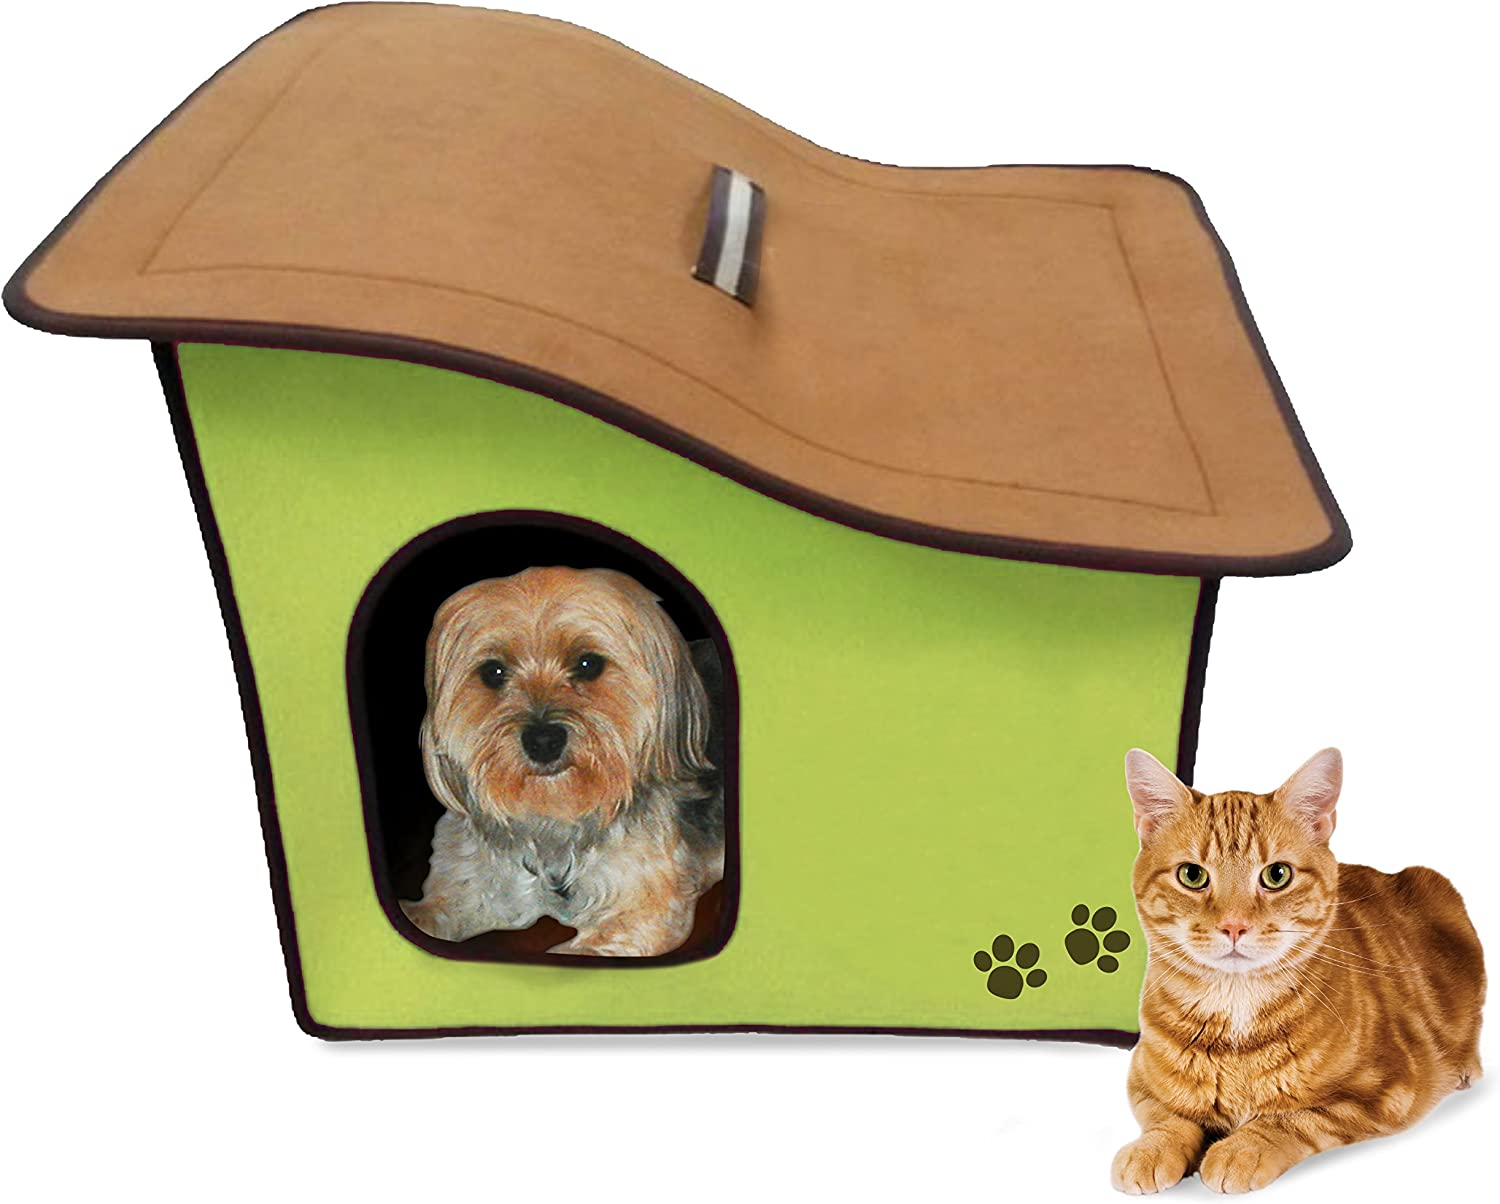 Amazon Com Penn Plax Portable Soft Dog House For Smaller Dogs Or Cats Green Great For Travel Give Your Pet The Comfort Of An Indoor Doghouse Zh2 Pet Supplies